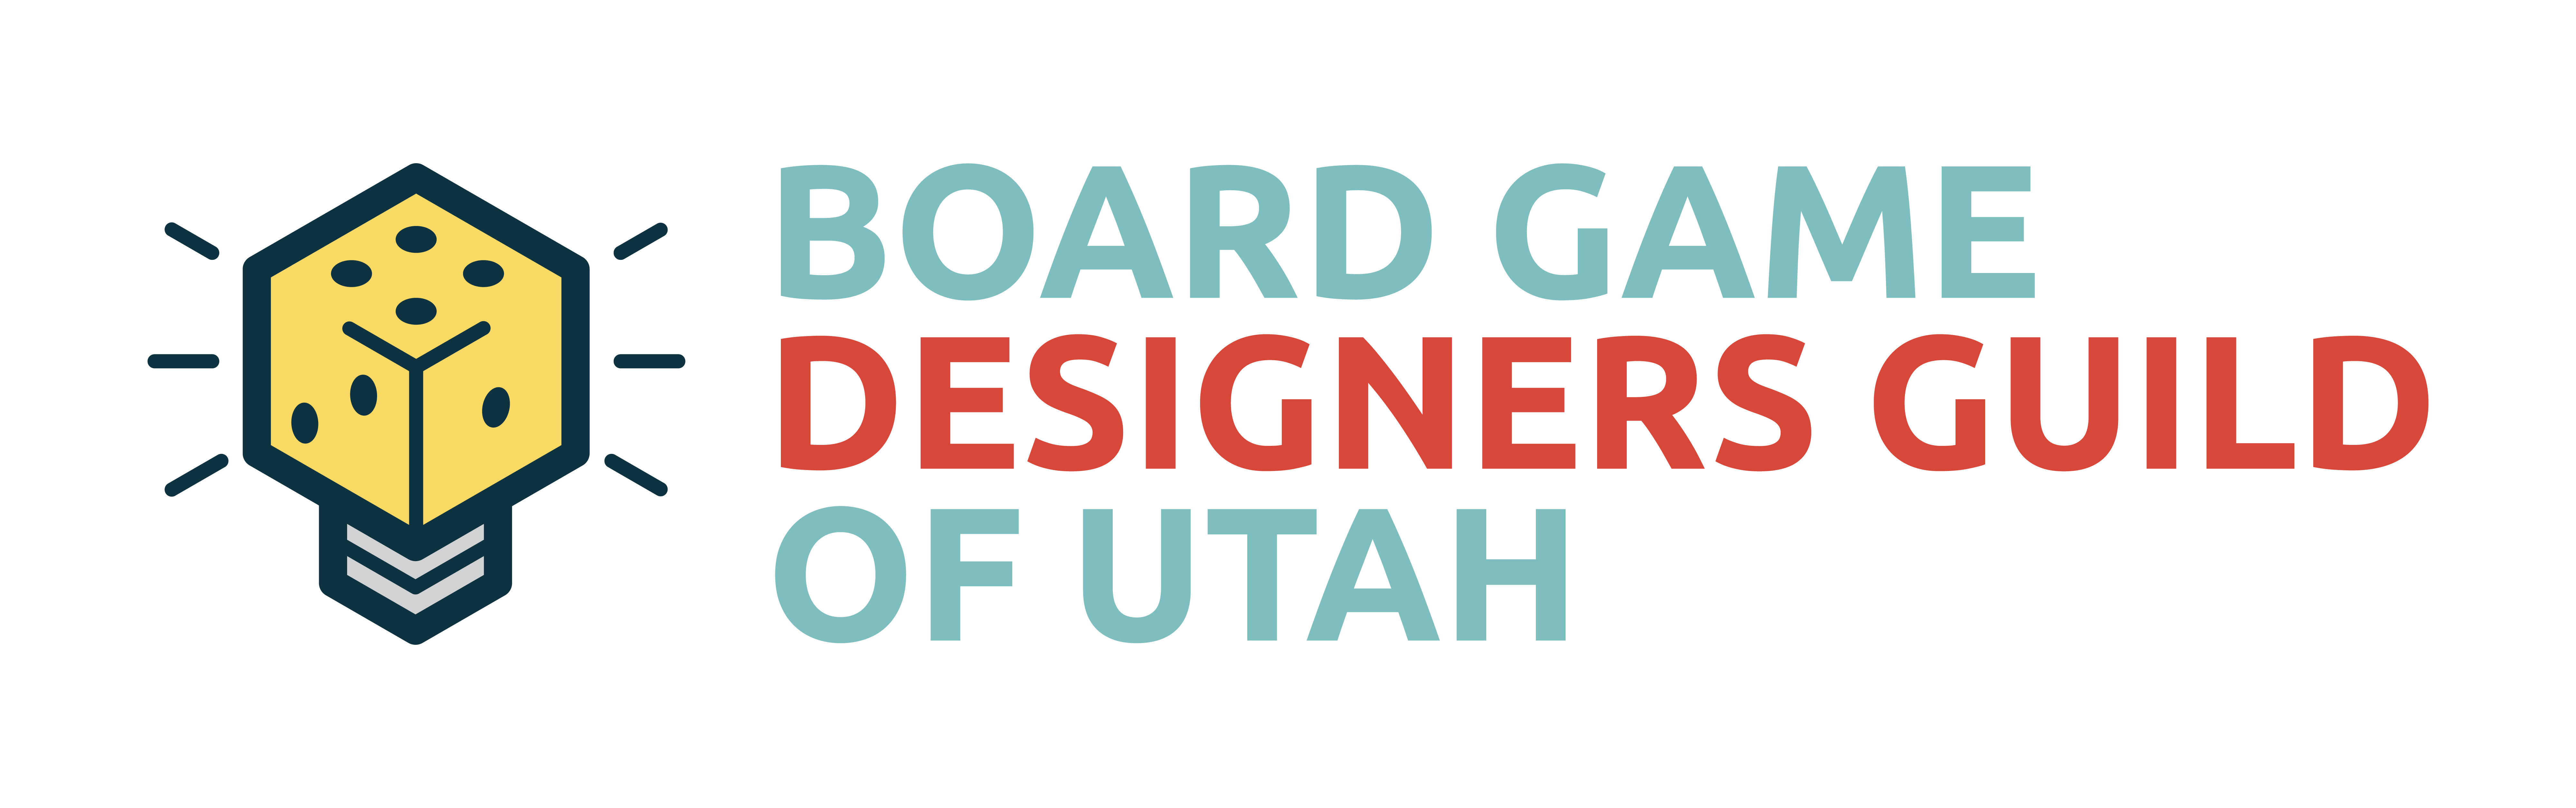 Logo for the Board Game Designers Guild of Utah